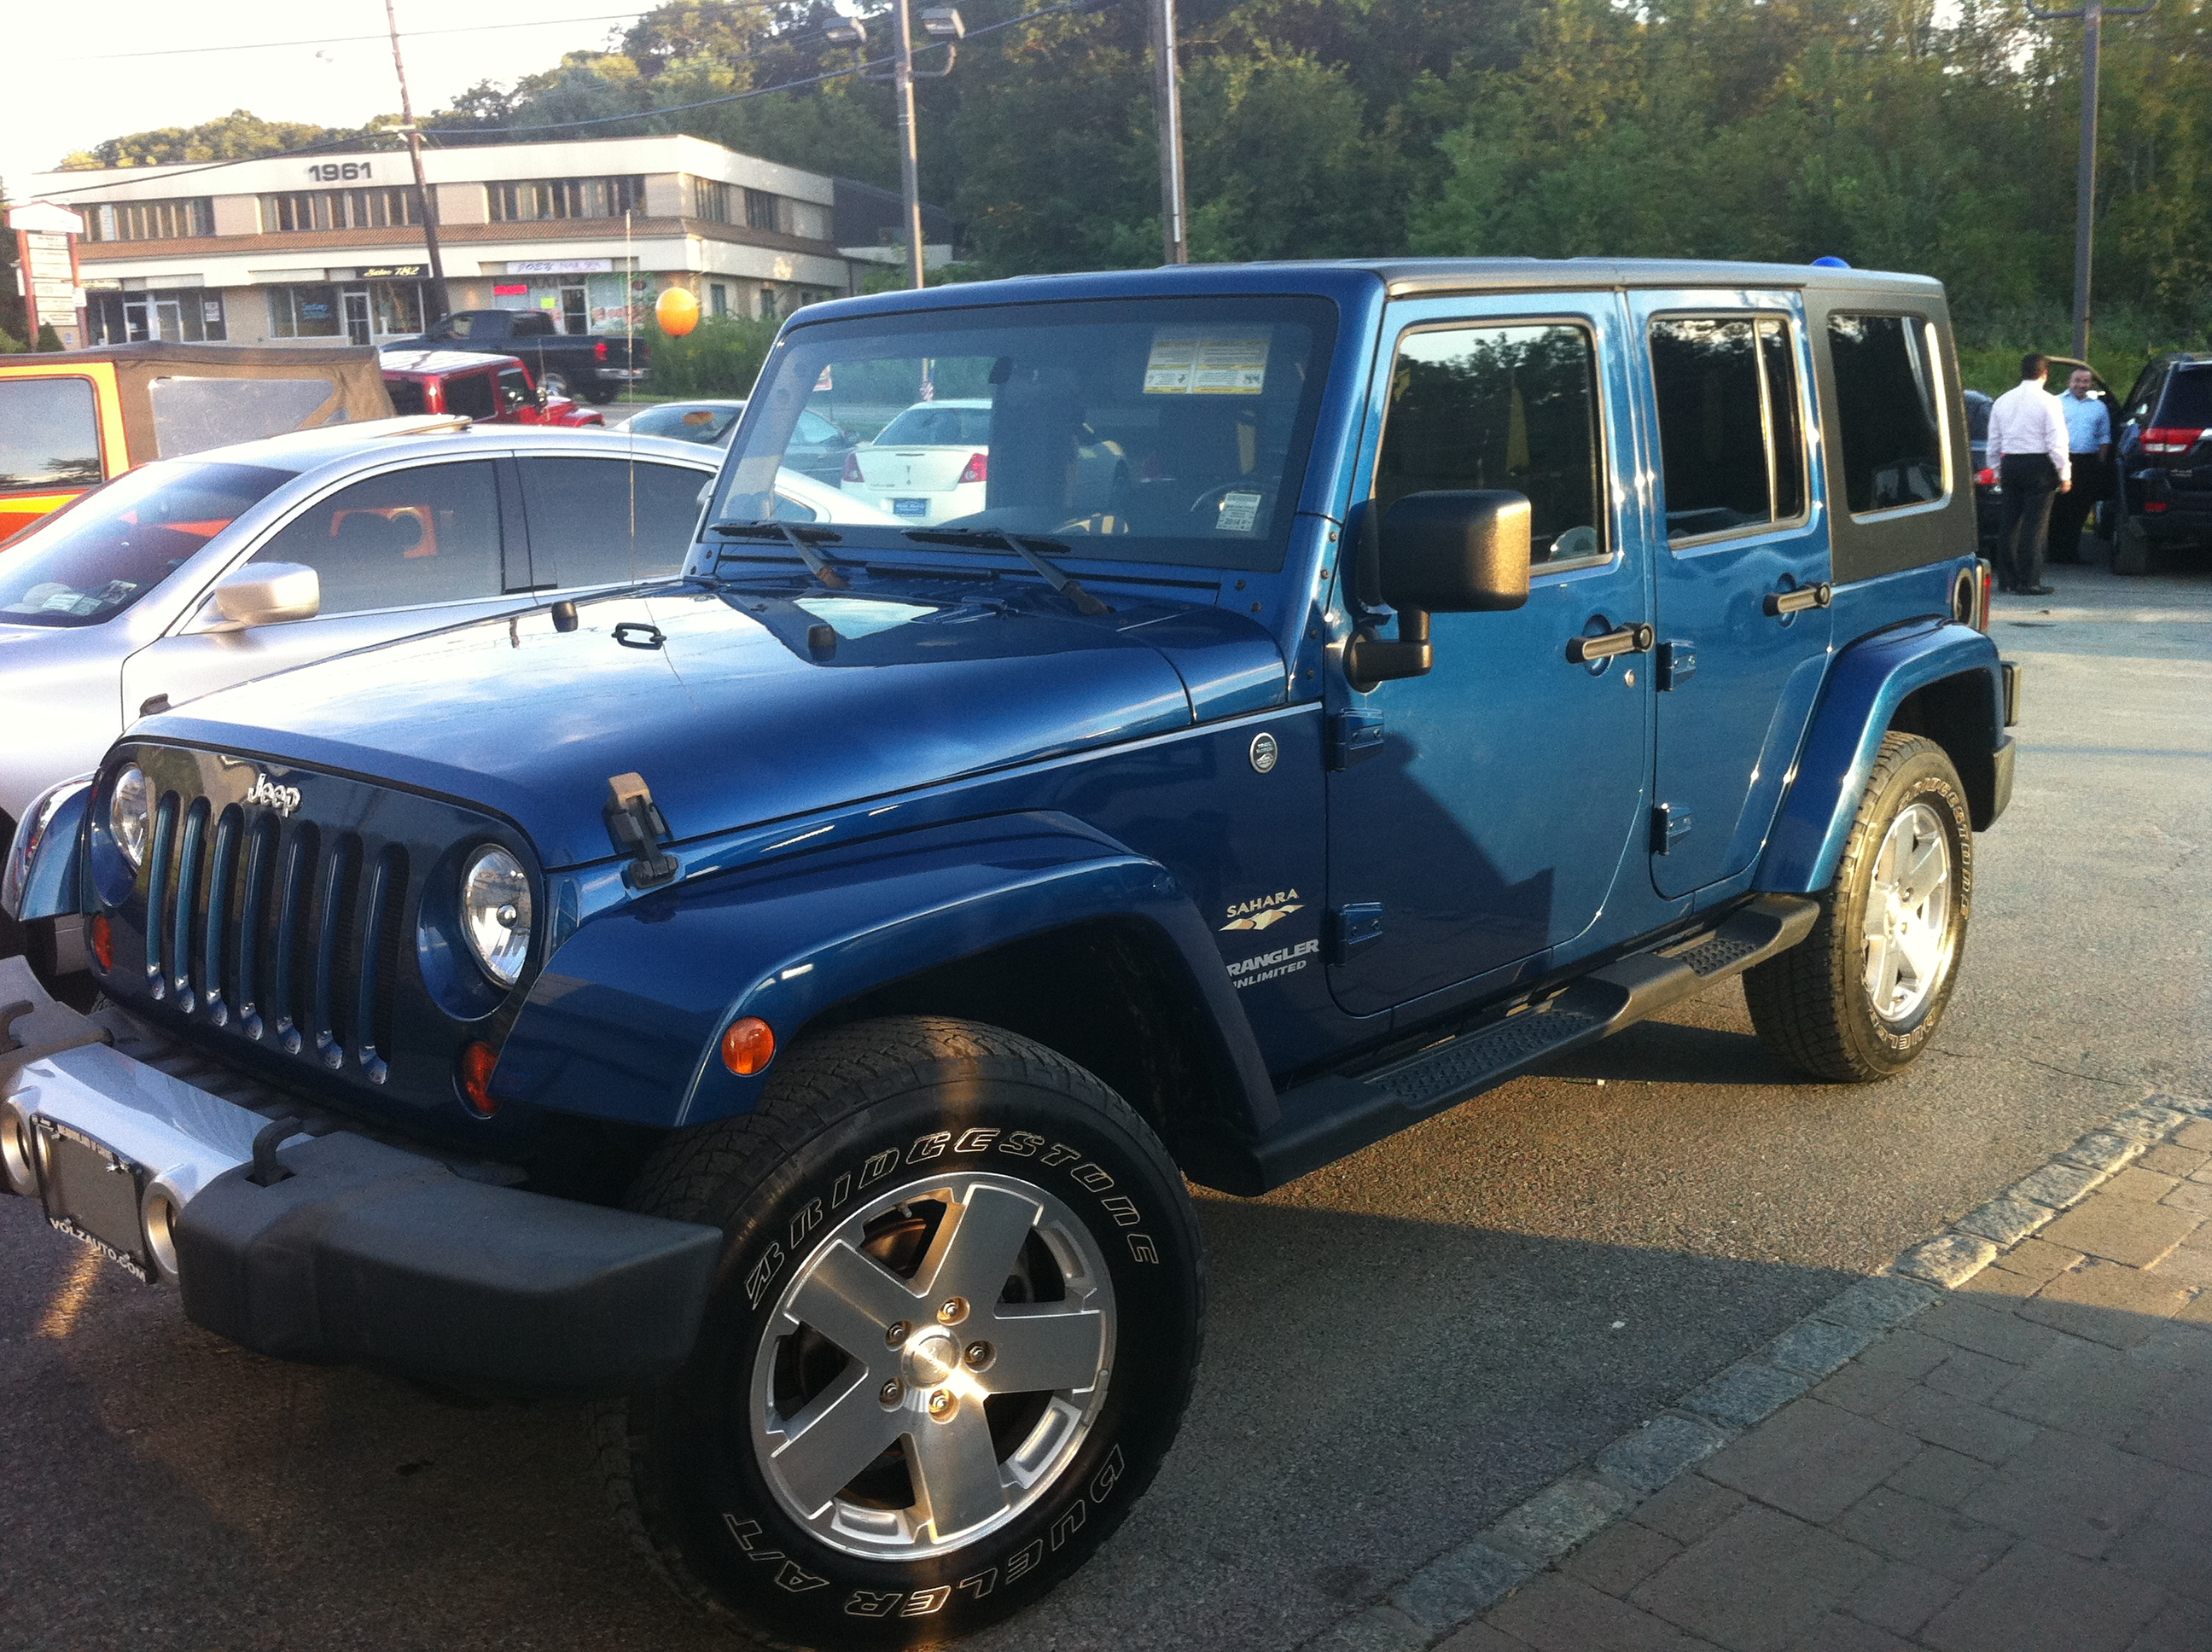 back green function yellow door bright jeep ip control open new red radio gray blue full